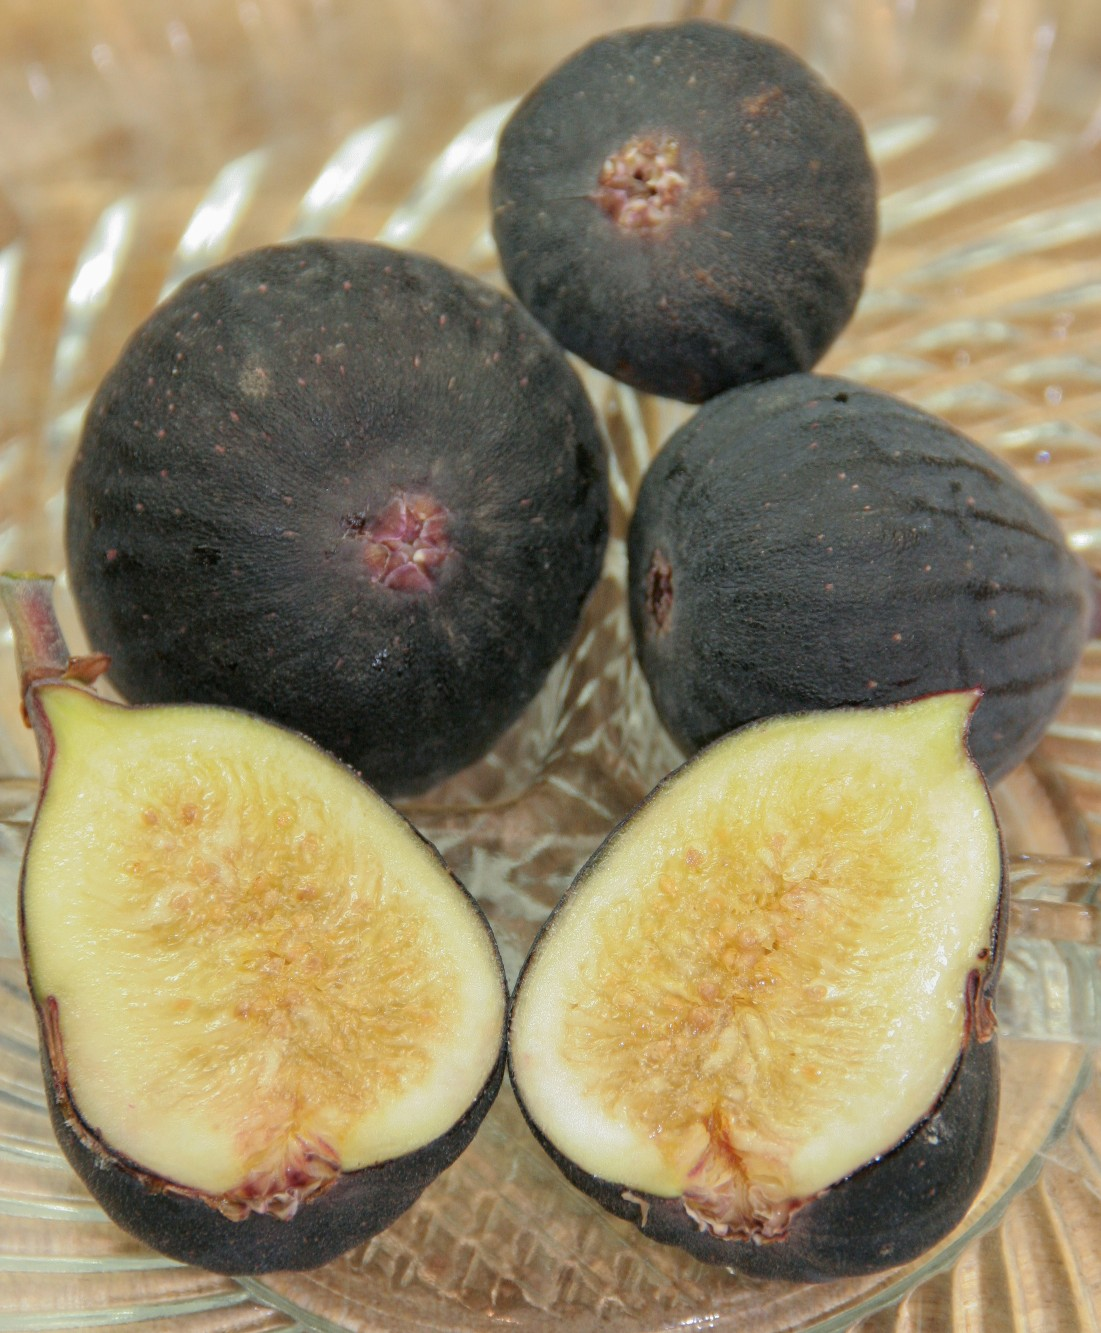 Ficus carica 'Black Mission'